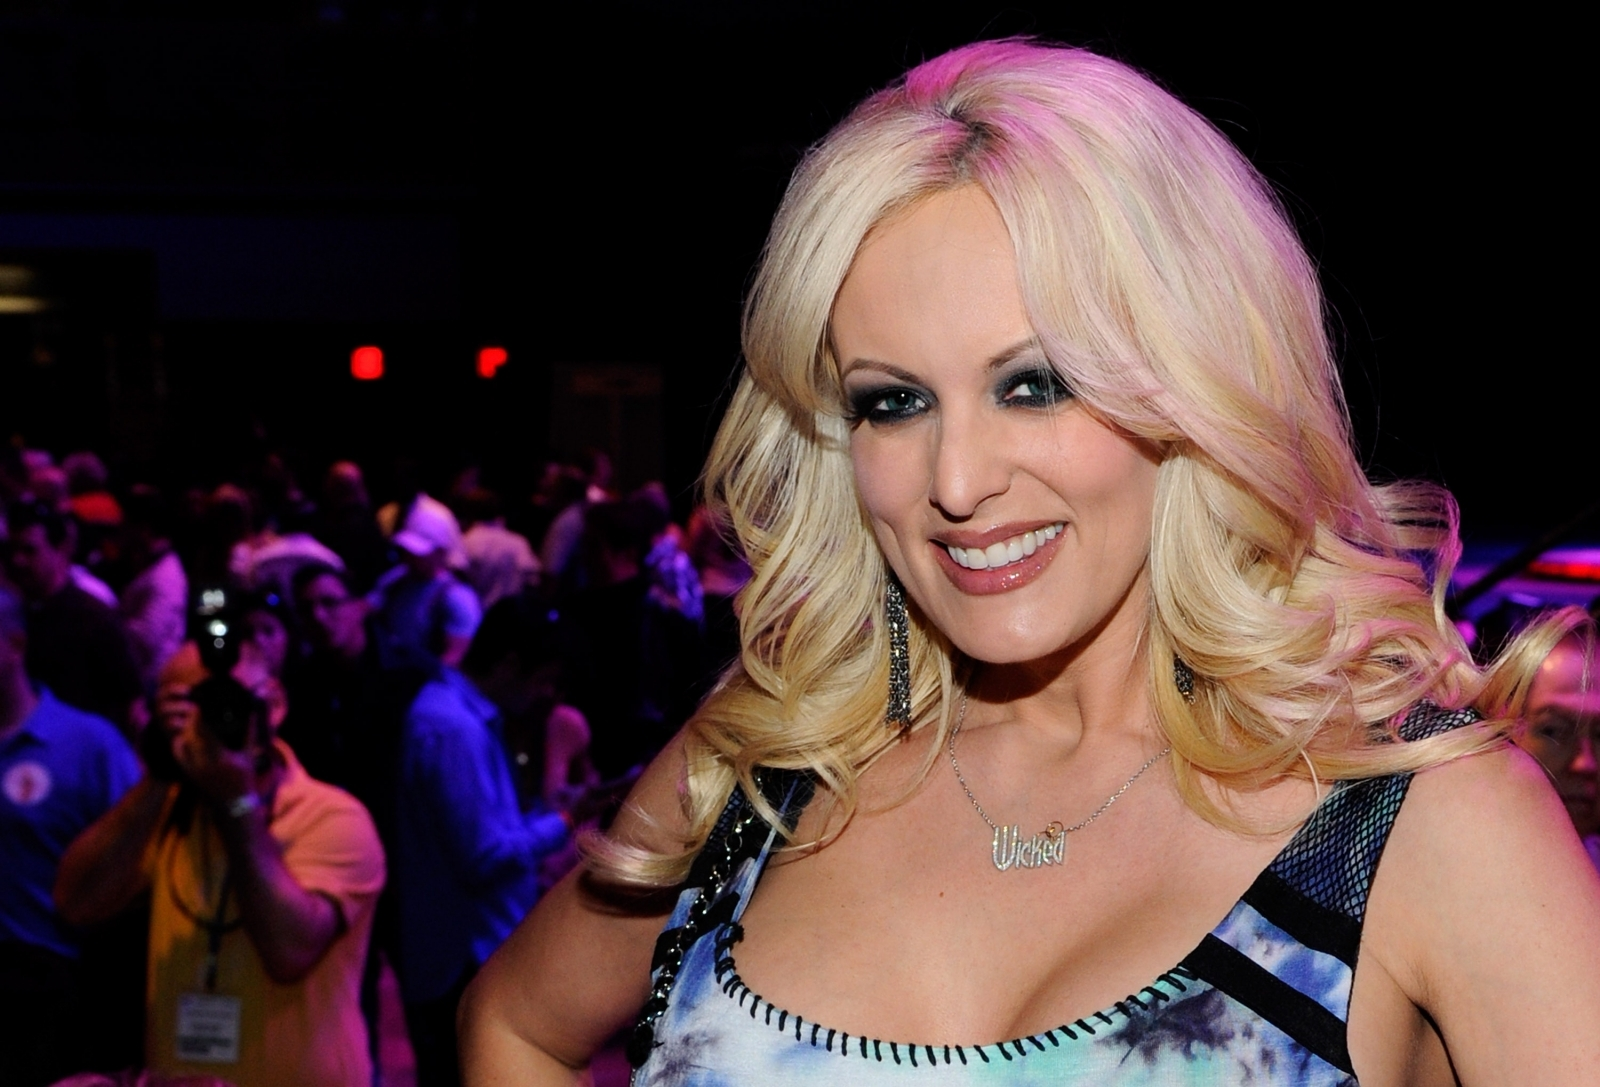 Trump is 'obsessed' with sharks but hopes they all die, claims porn star Stormy Daniels